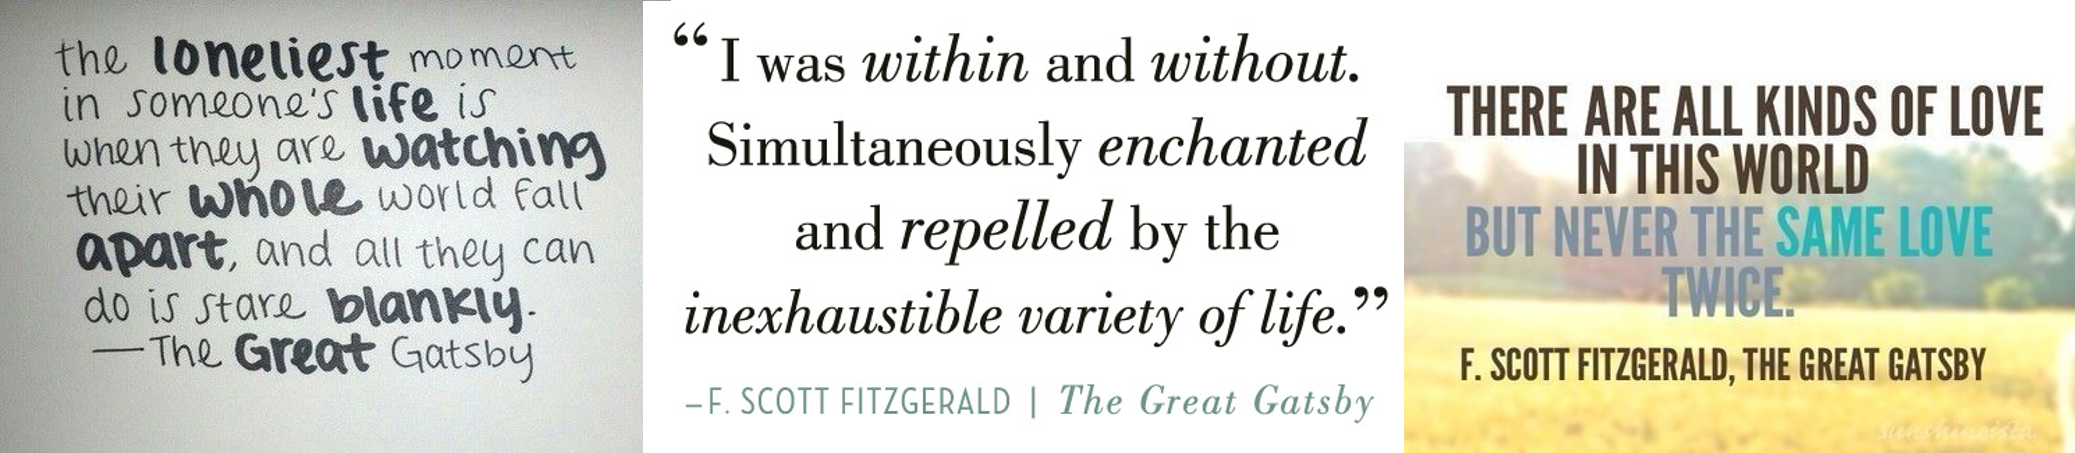 Quotes From The Great Gatsby Review The Great Gatsby  Confessions Of A Book Geek